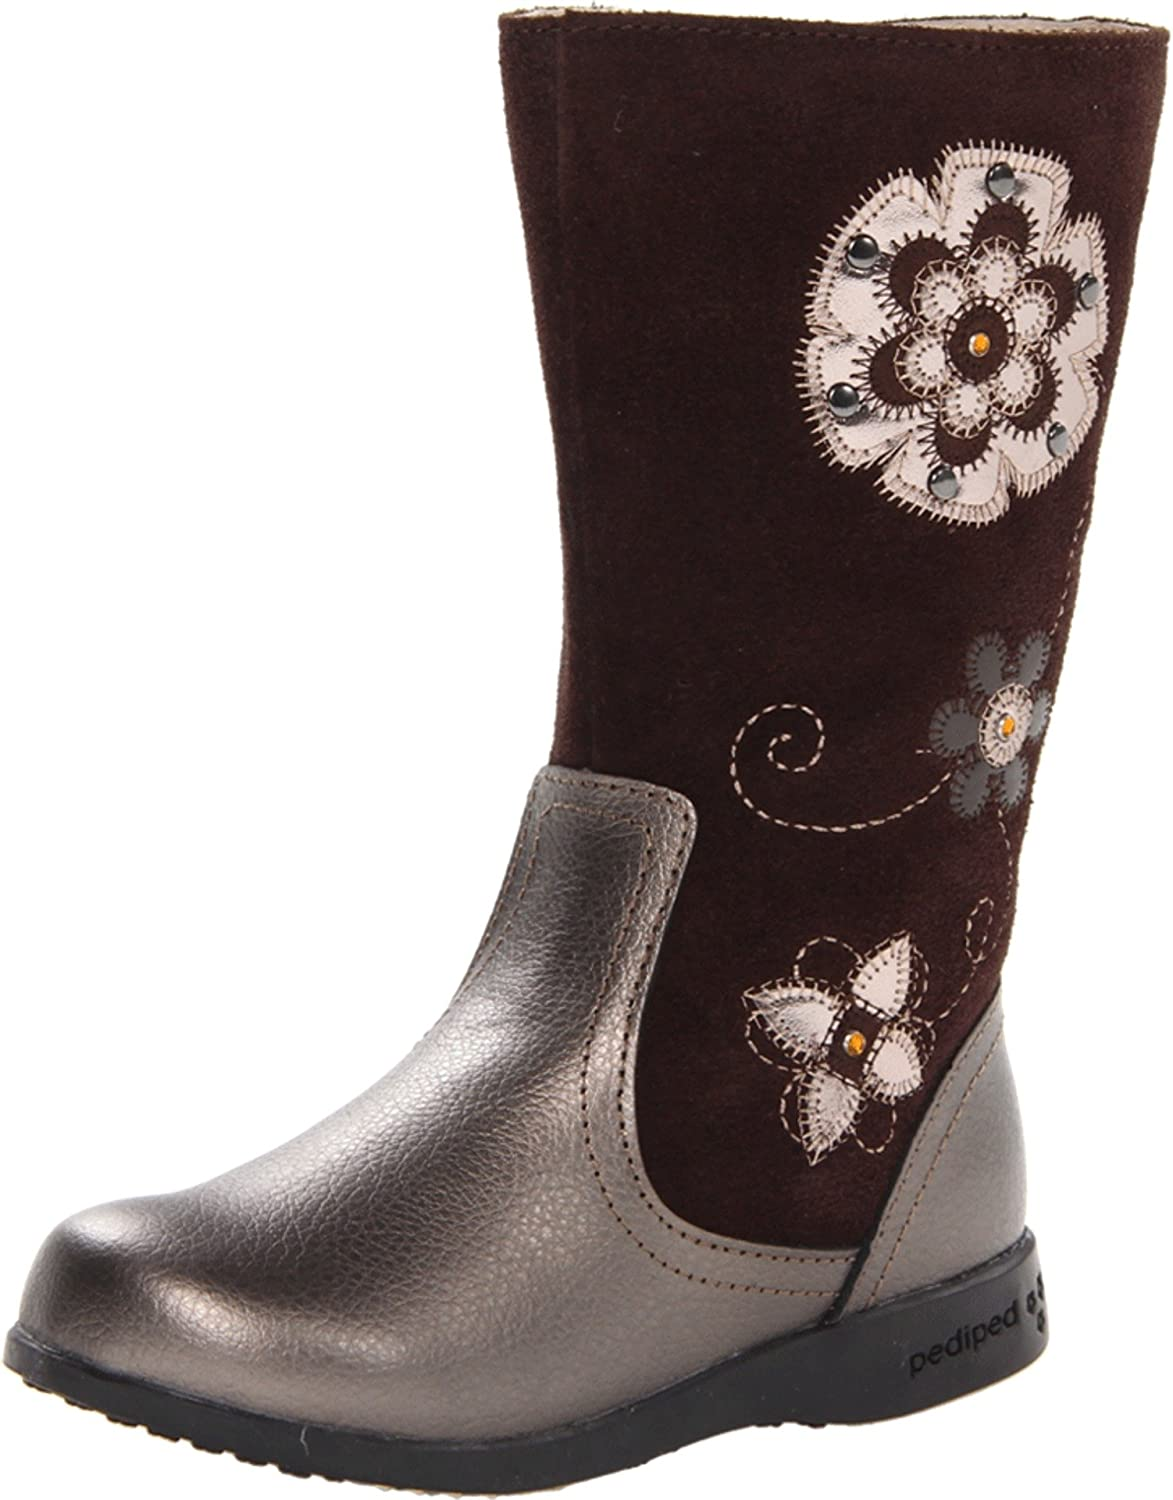 pediped Flex Ranking TOP2 Paula Boot Little Kid Toddler New mail order